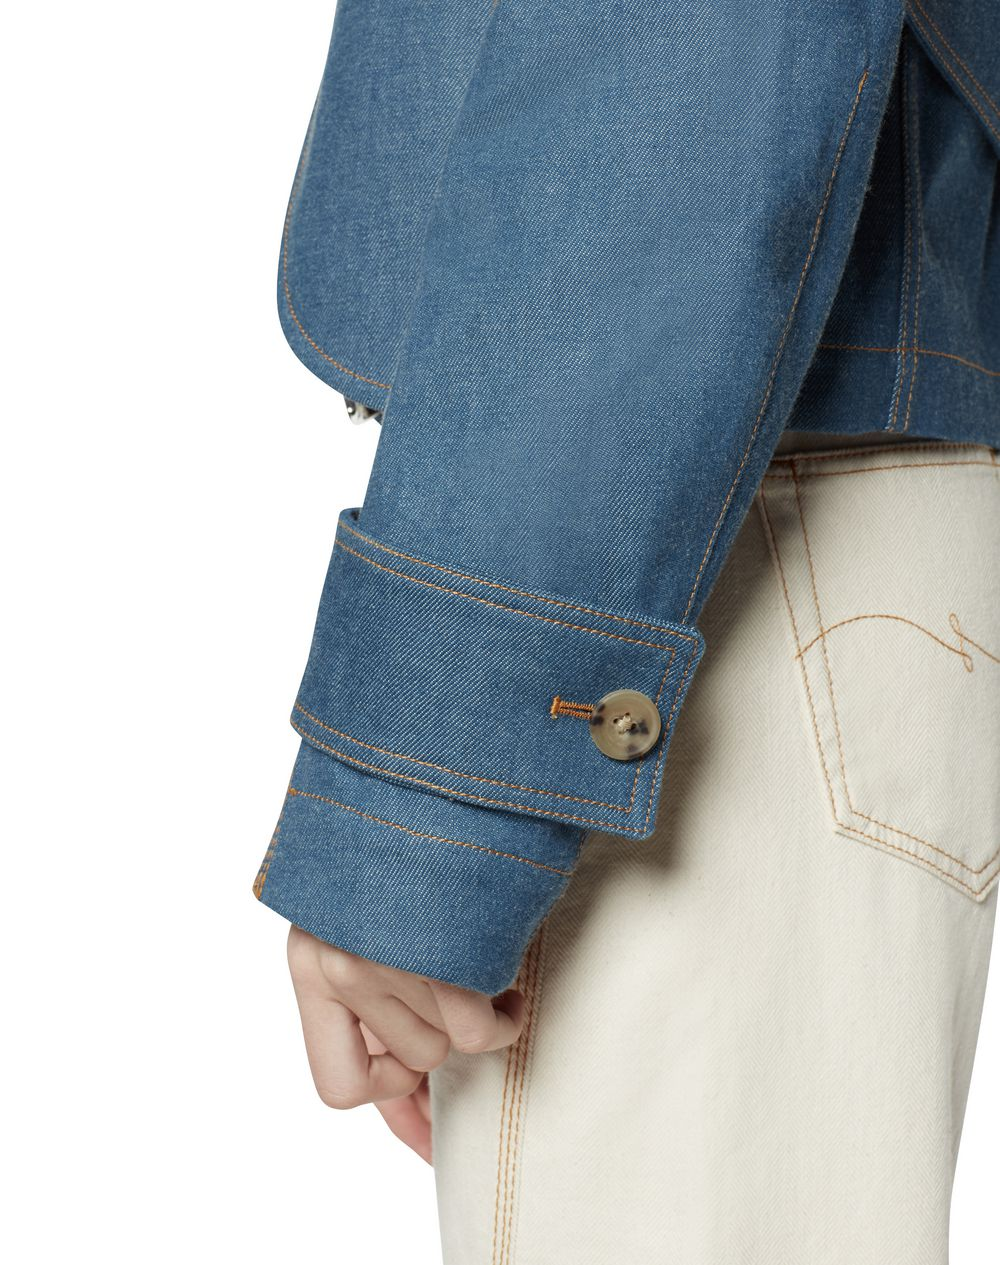 SHORT DENIM JACKET - Lanvin